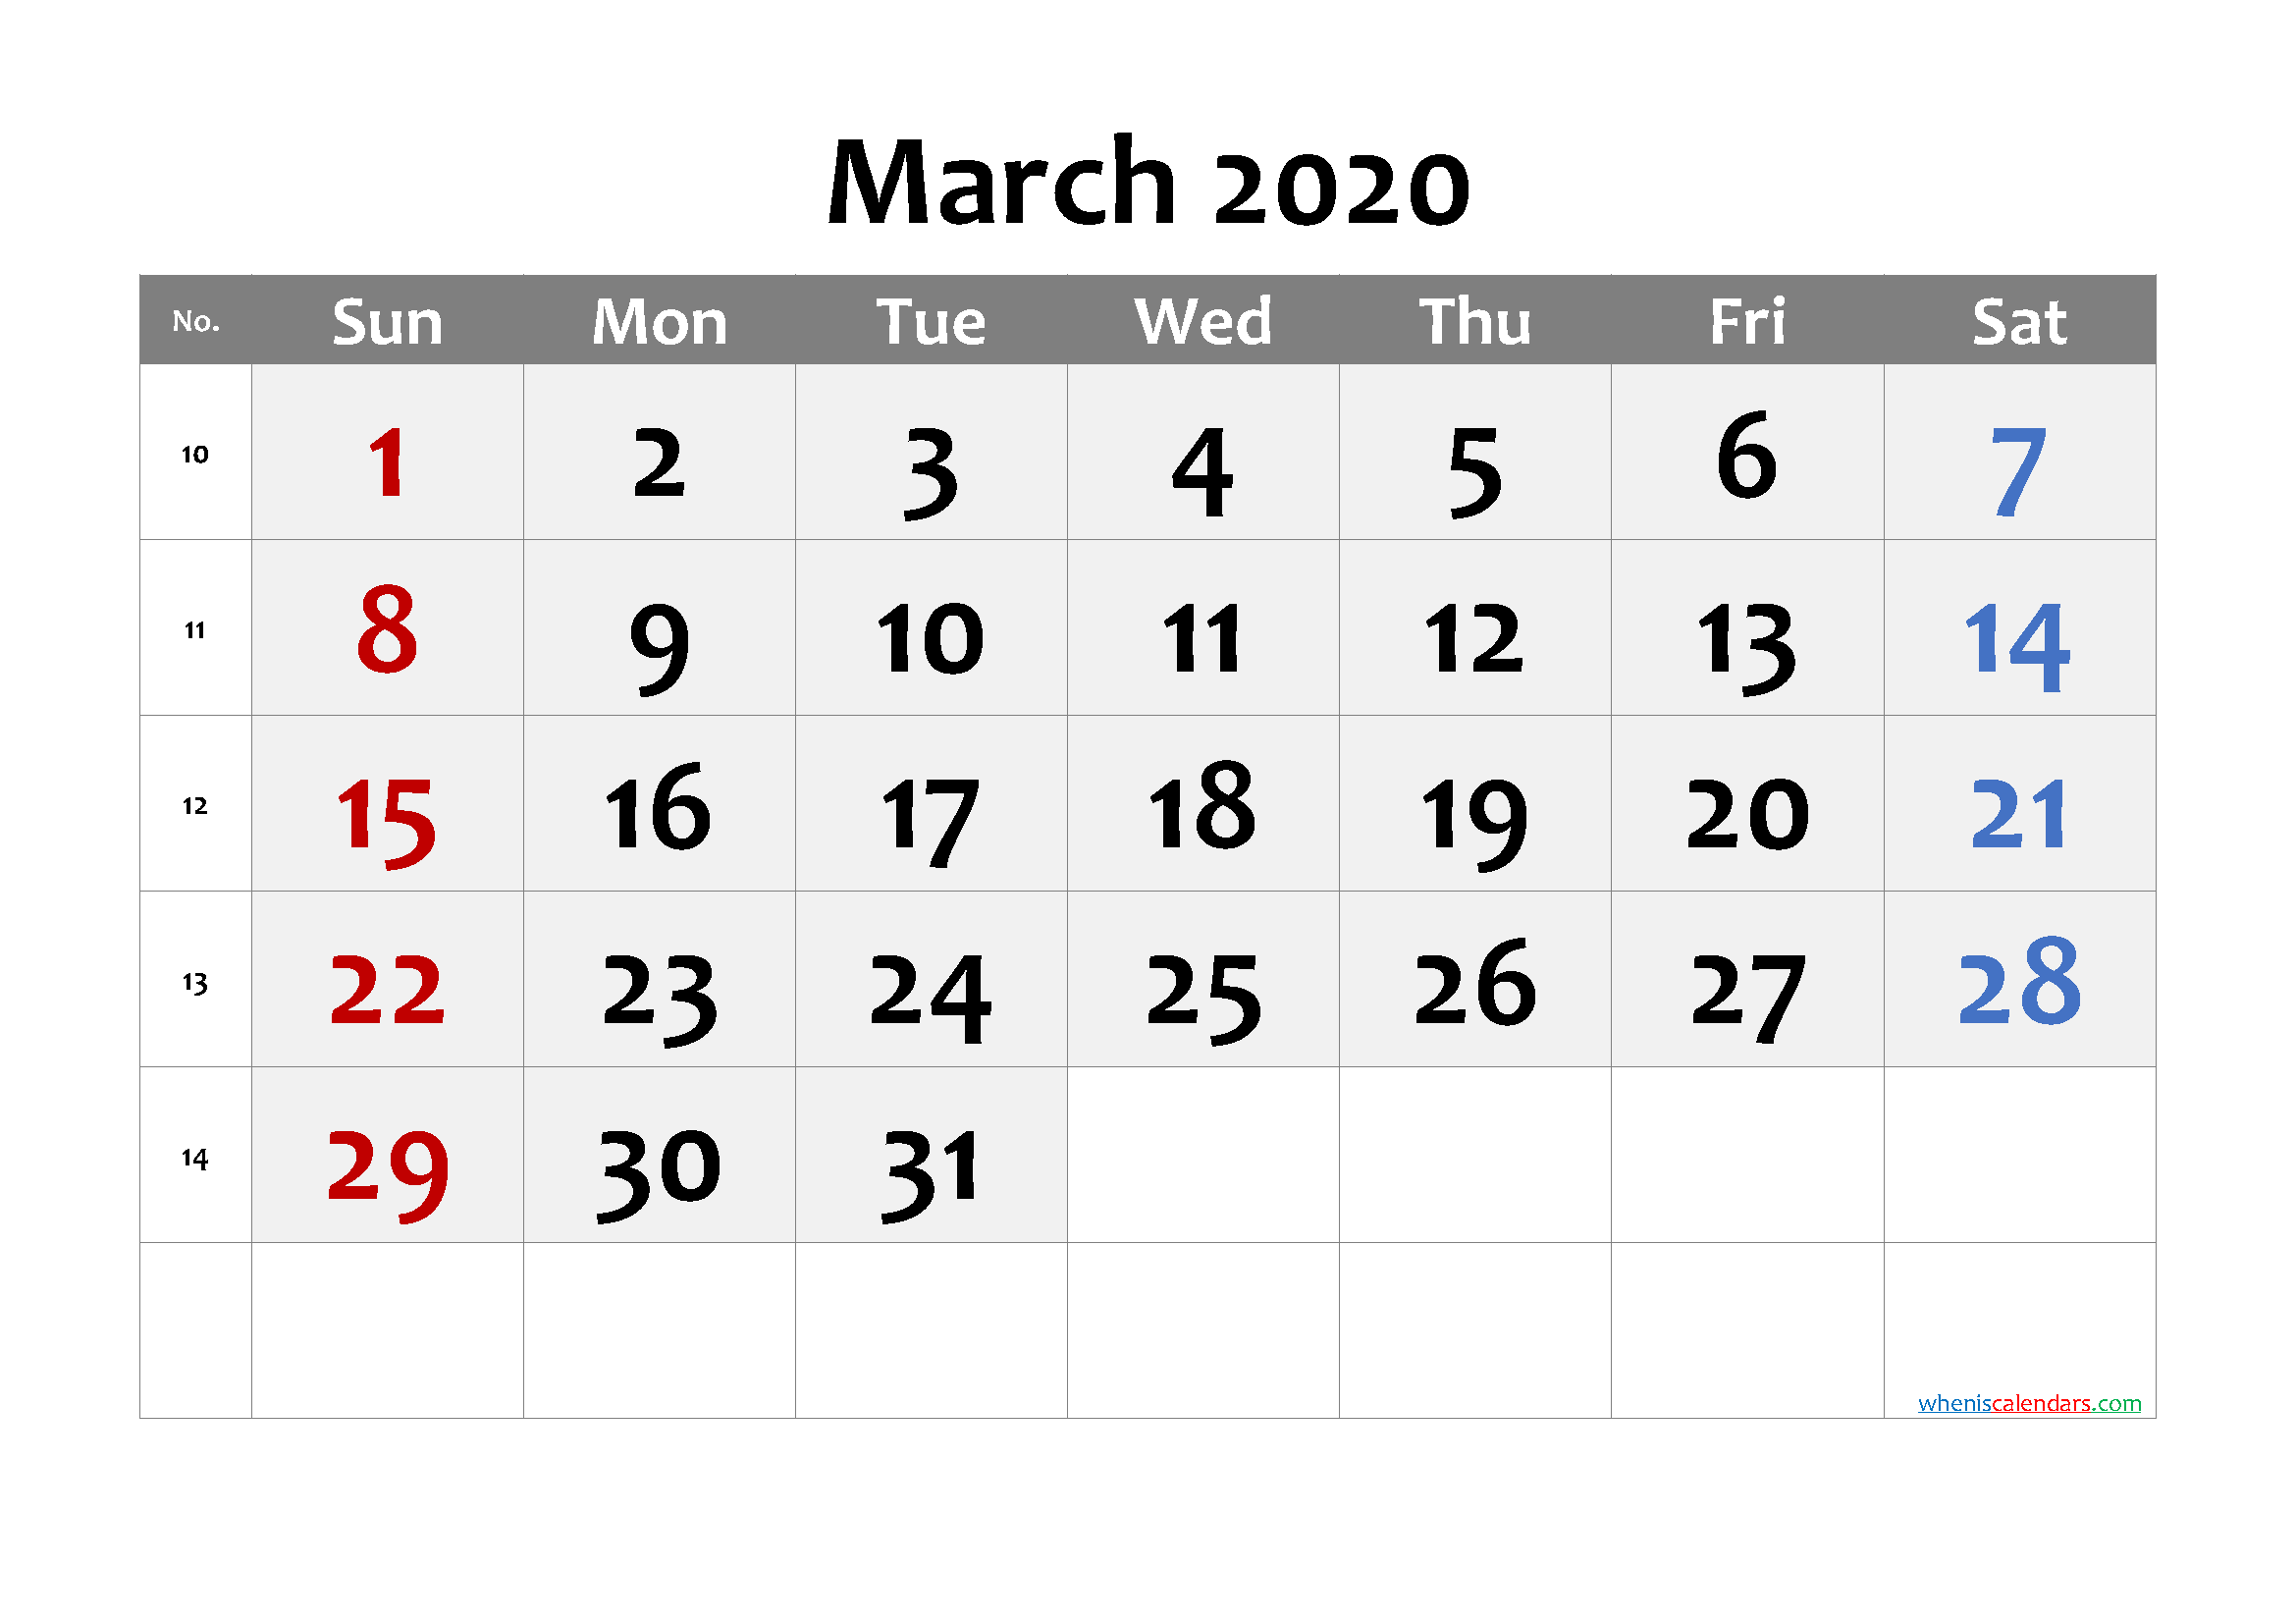 March 2020 Printable Calendar with Week Numbers